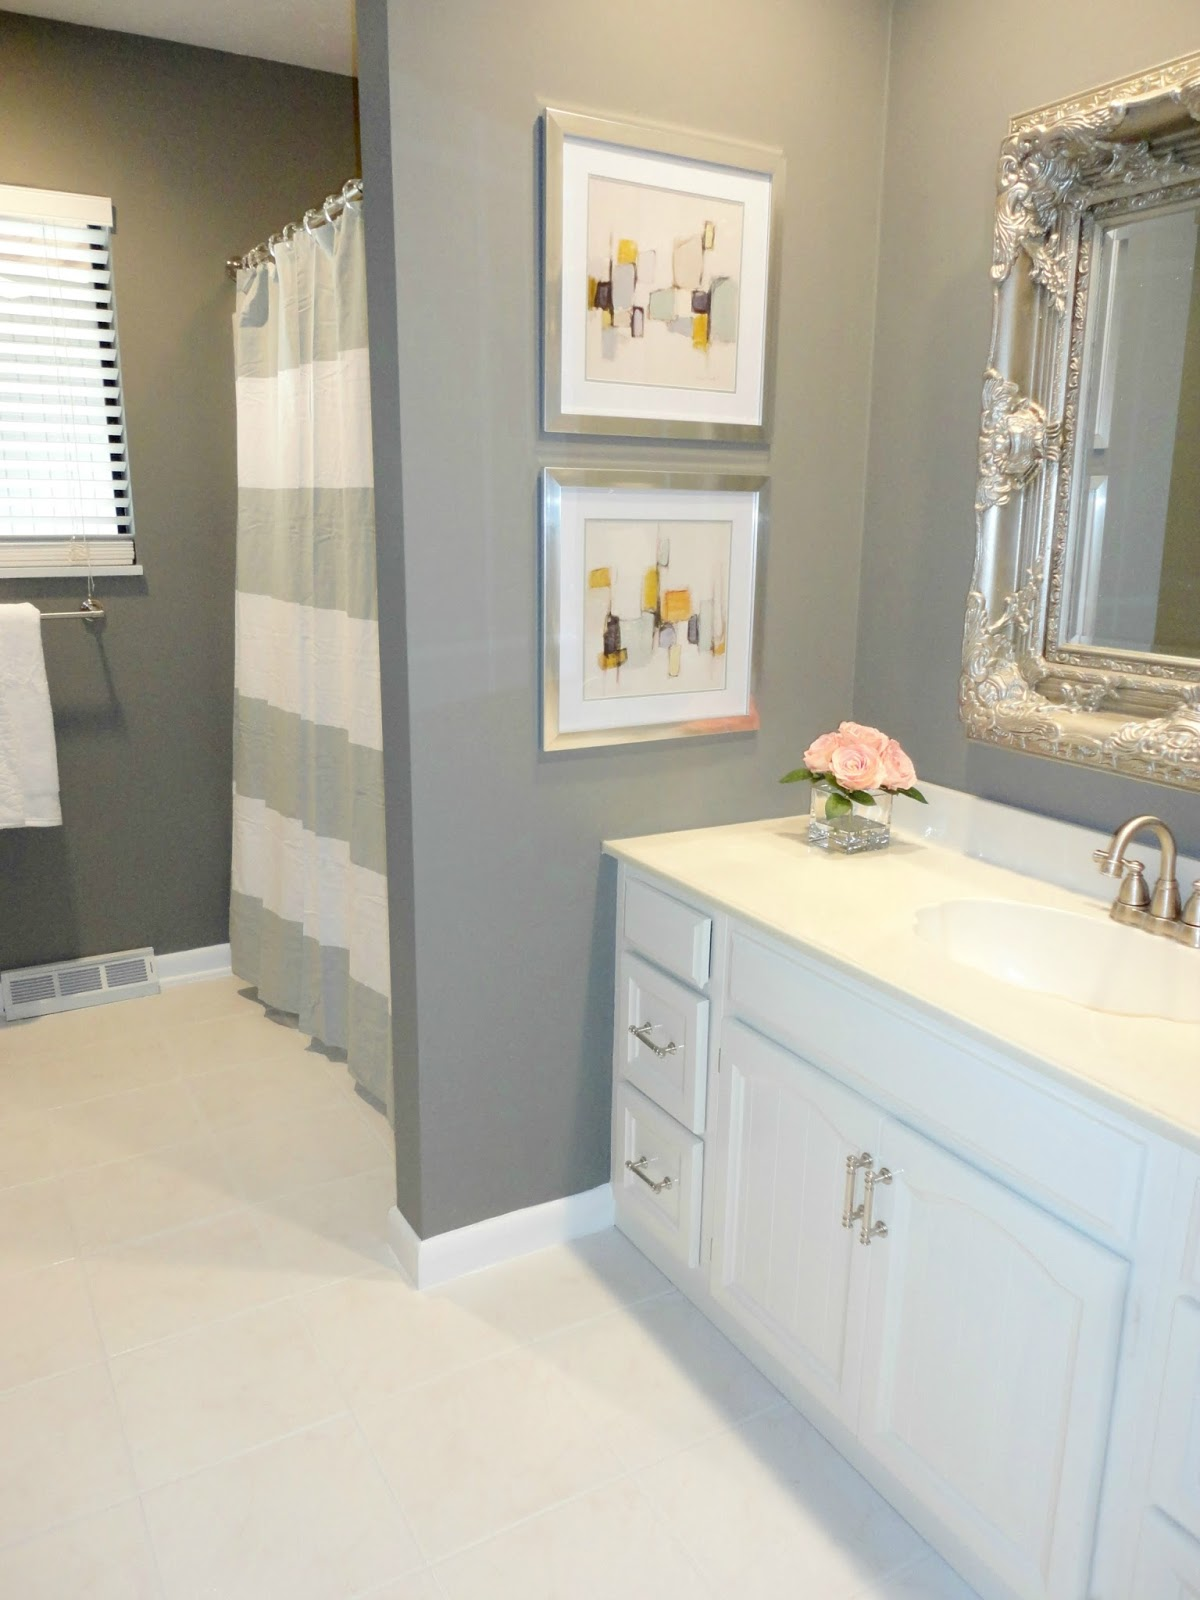 Amazing DIY Bathroom Remodel on a Budget